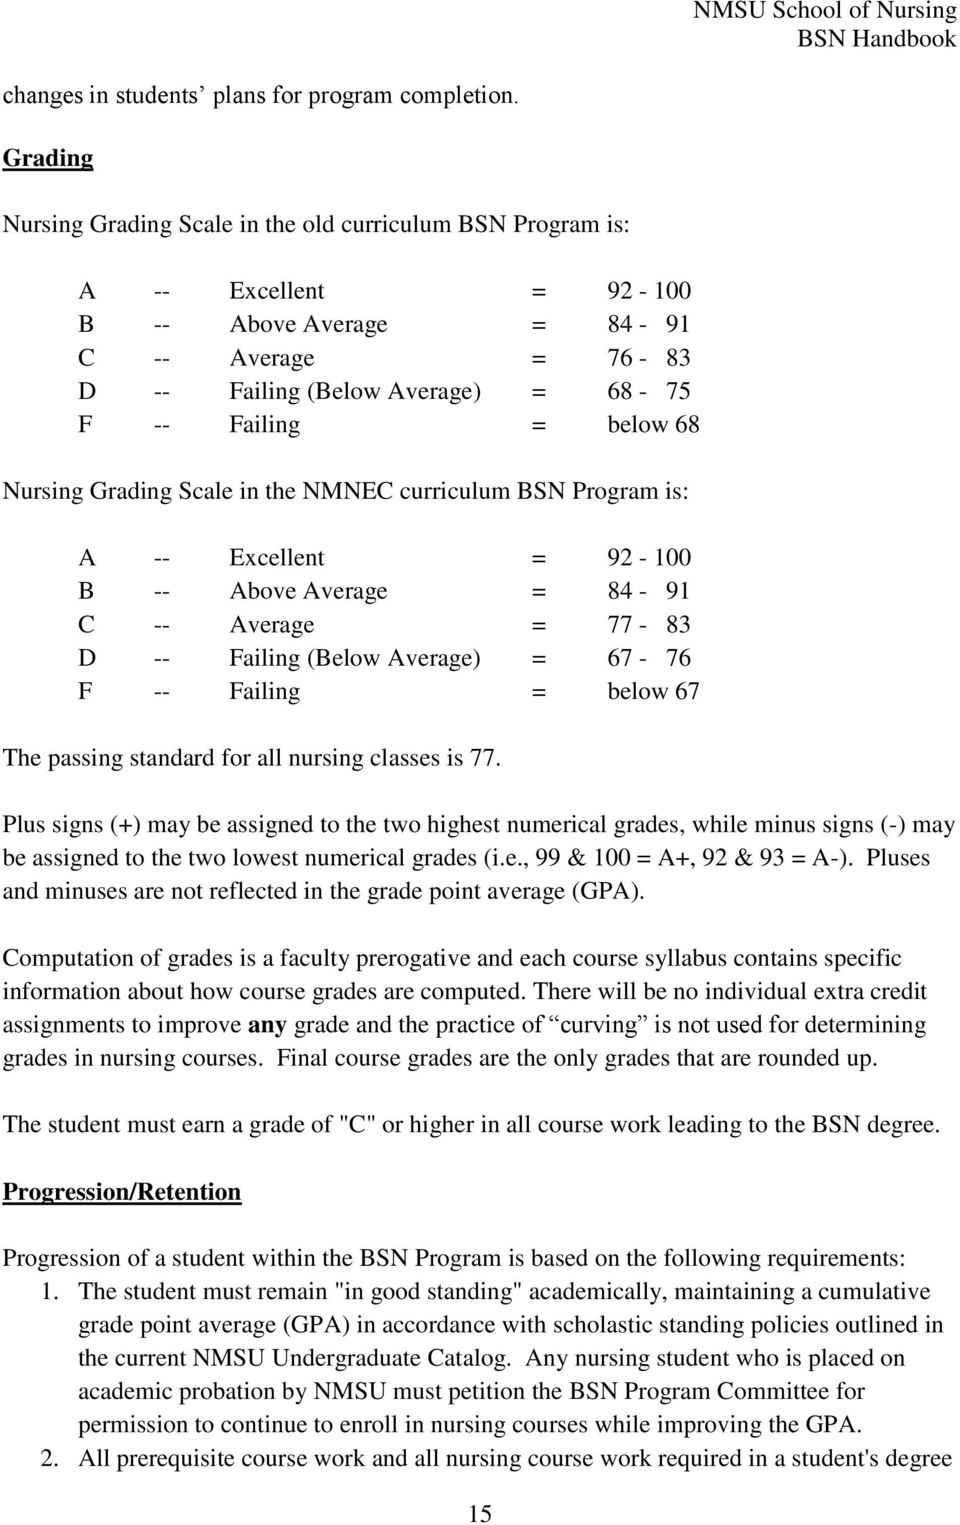 68 Nursing Grading Scale in the NMNEC curriculum BSN Program is: A -- Excellent = 92-100 B -- Above Average = 84-91 C -- Average = 77-83 D -- Failing (Below Average) = 67-76 F -- Failing = below 67